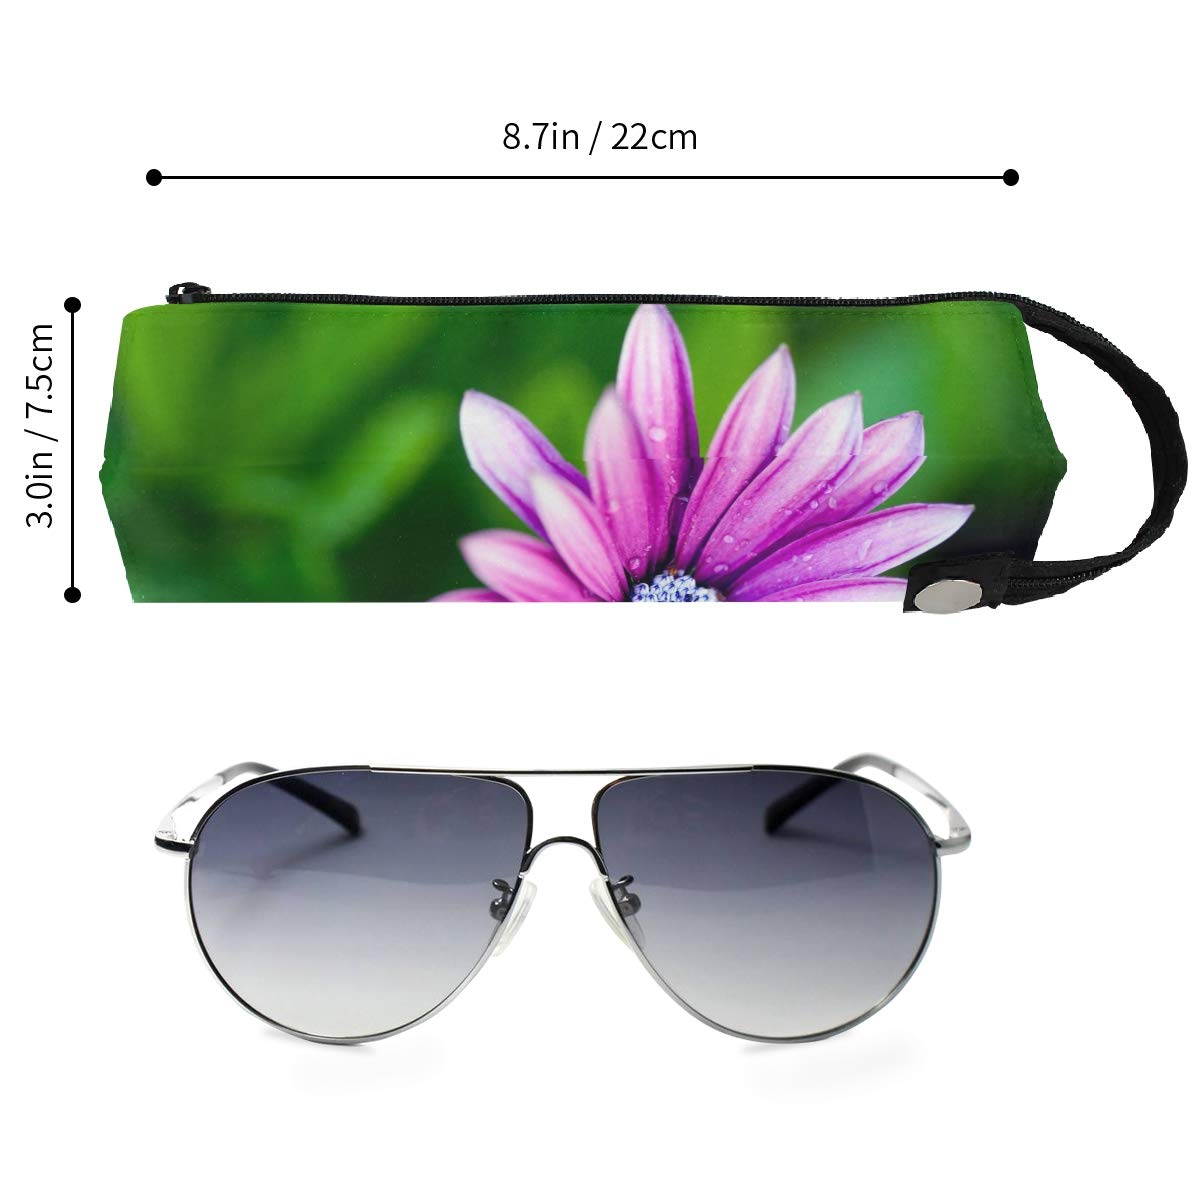 Glasses Case Puffer Fish On White Background Portable Soft Sunglasses Pencil Bag Protective Holder